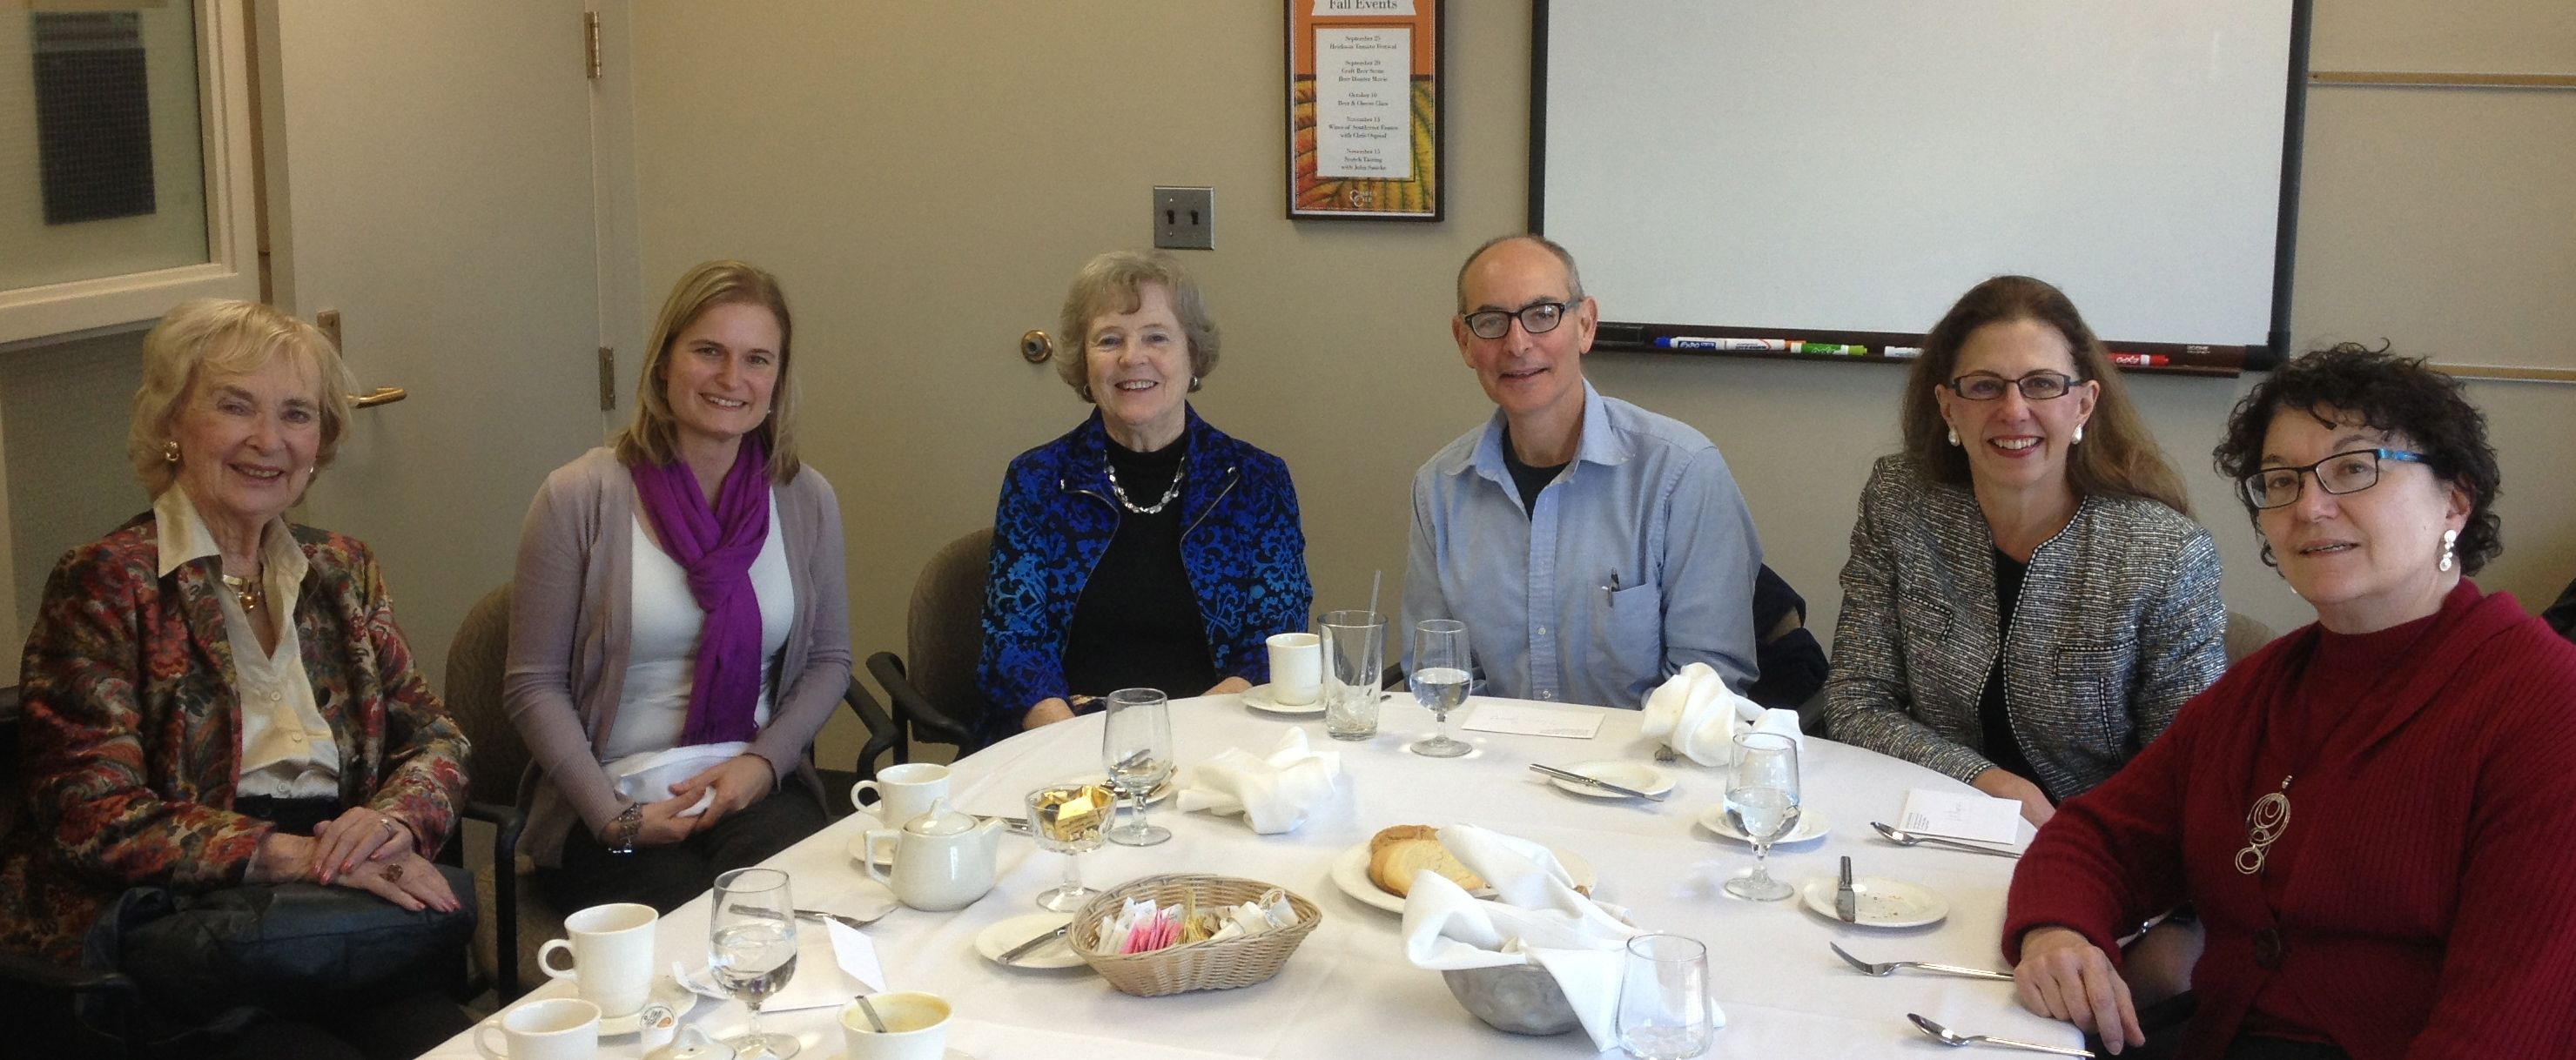 Kickoff of Judd Alumni occasional lunch series